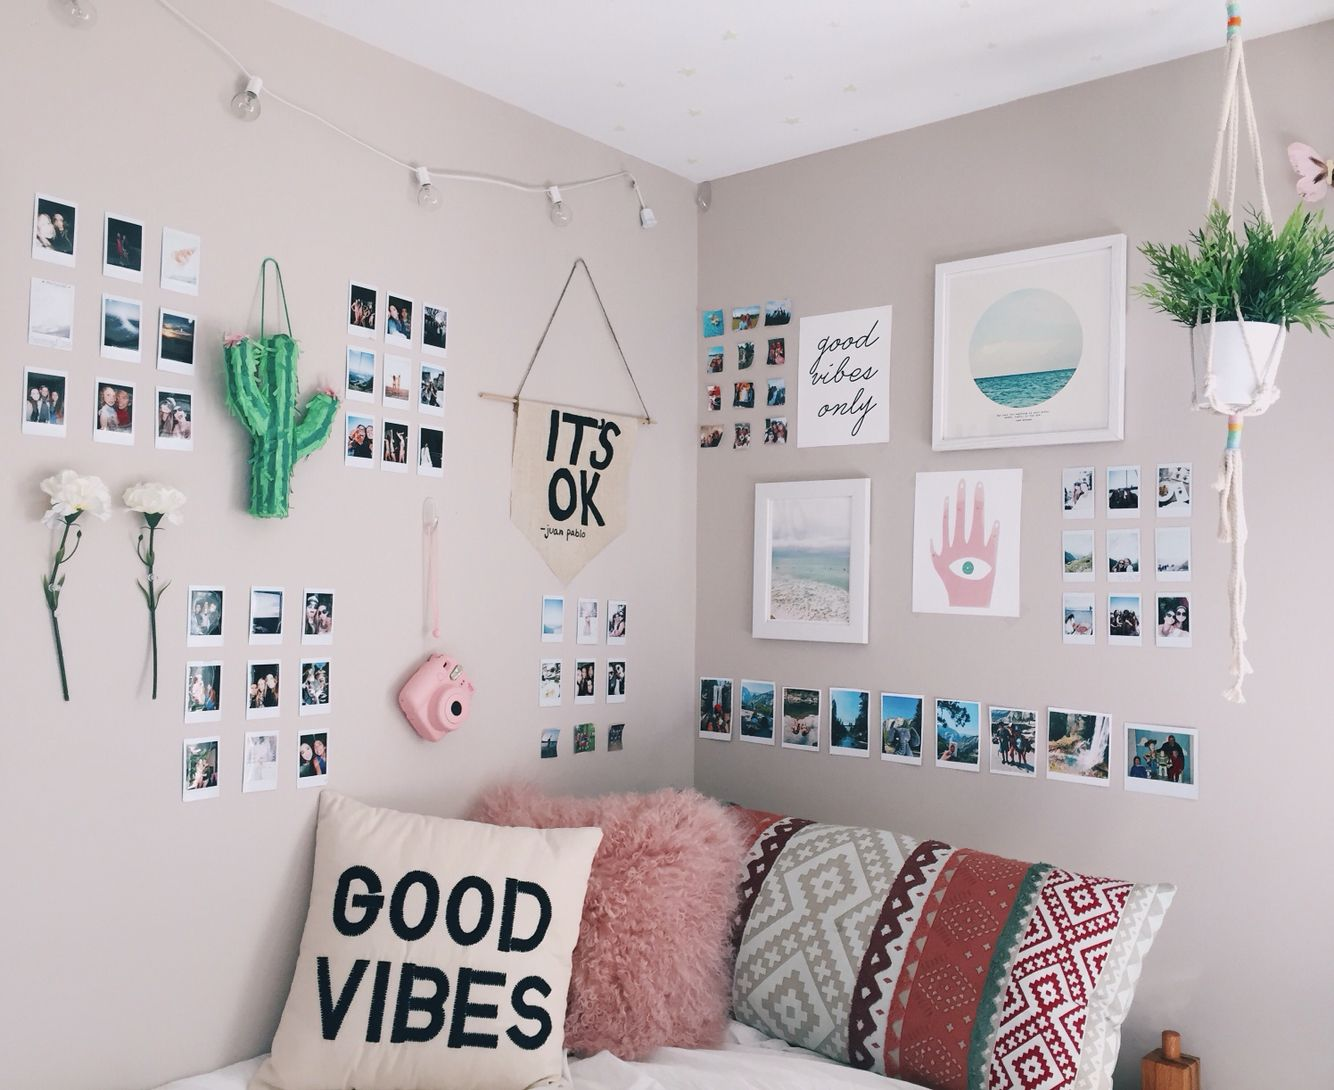 Teen Room Wall Decor.My Room Room Decor Minimalist Dorm Tumblr Rooms